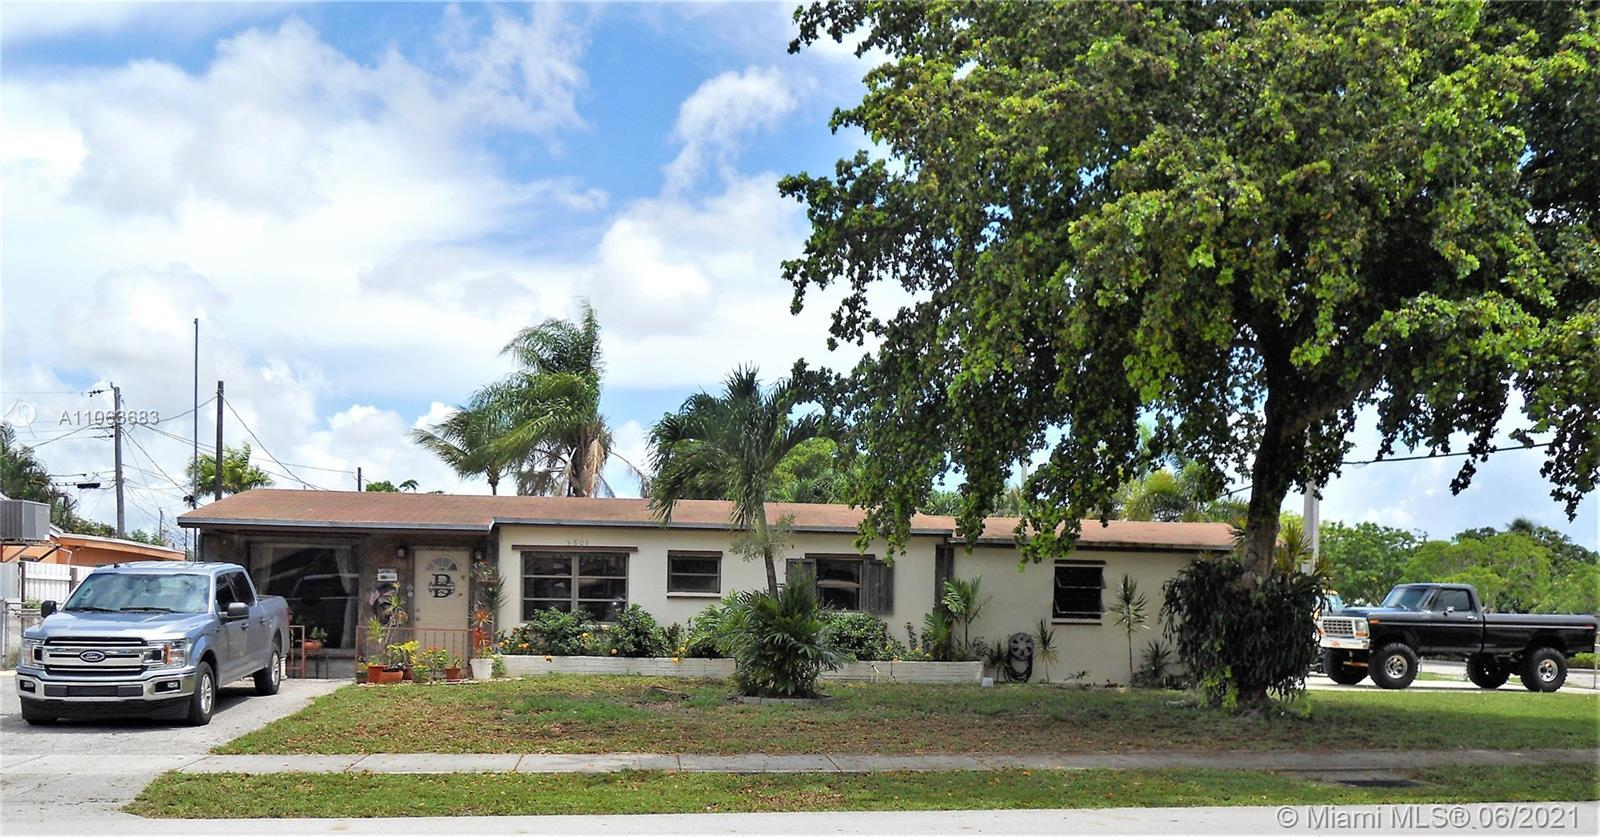 LOCATION LOCATION LOCATION! CHARMING HOME WITH NO HOA. GREAT NEIGHBORHOOD MINUTES FROM I-95, LAUDERD